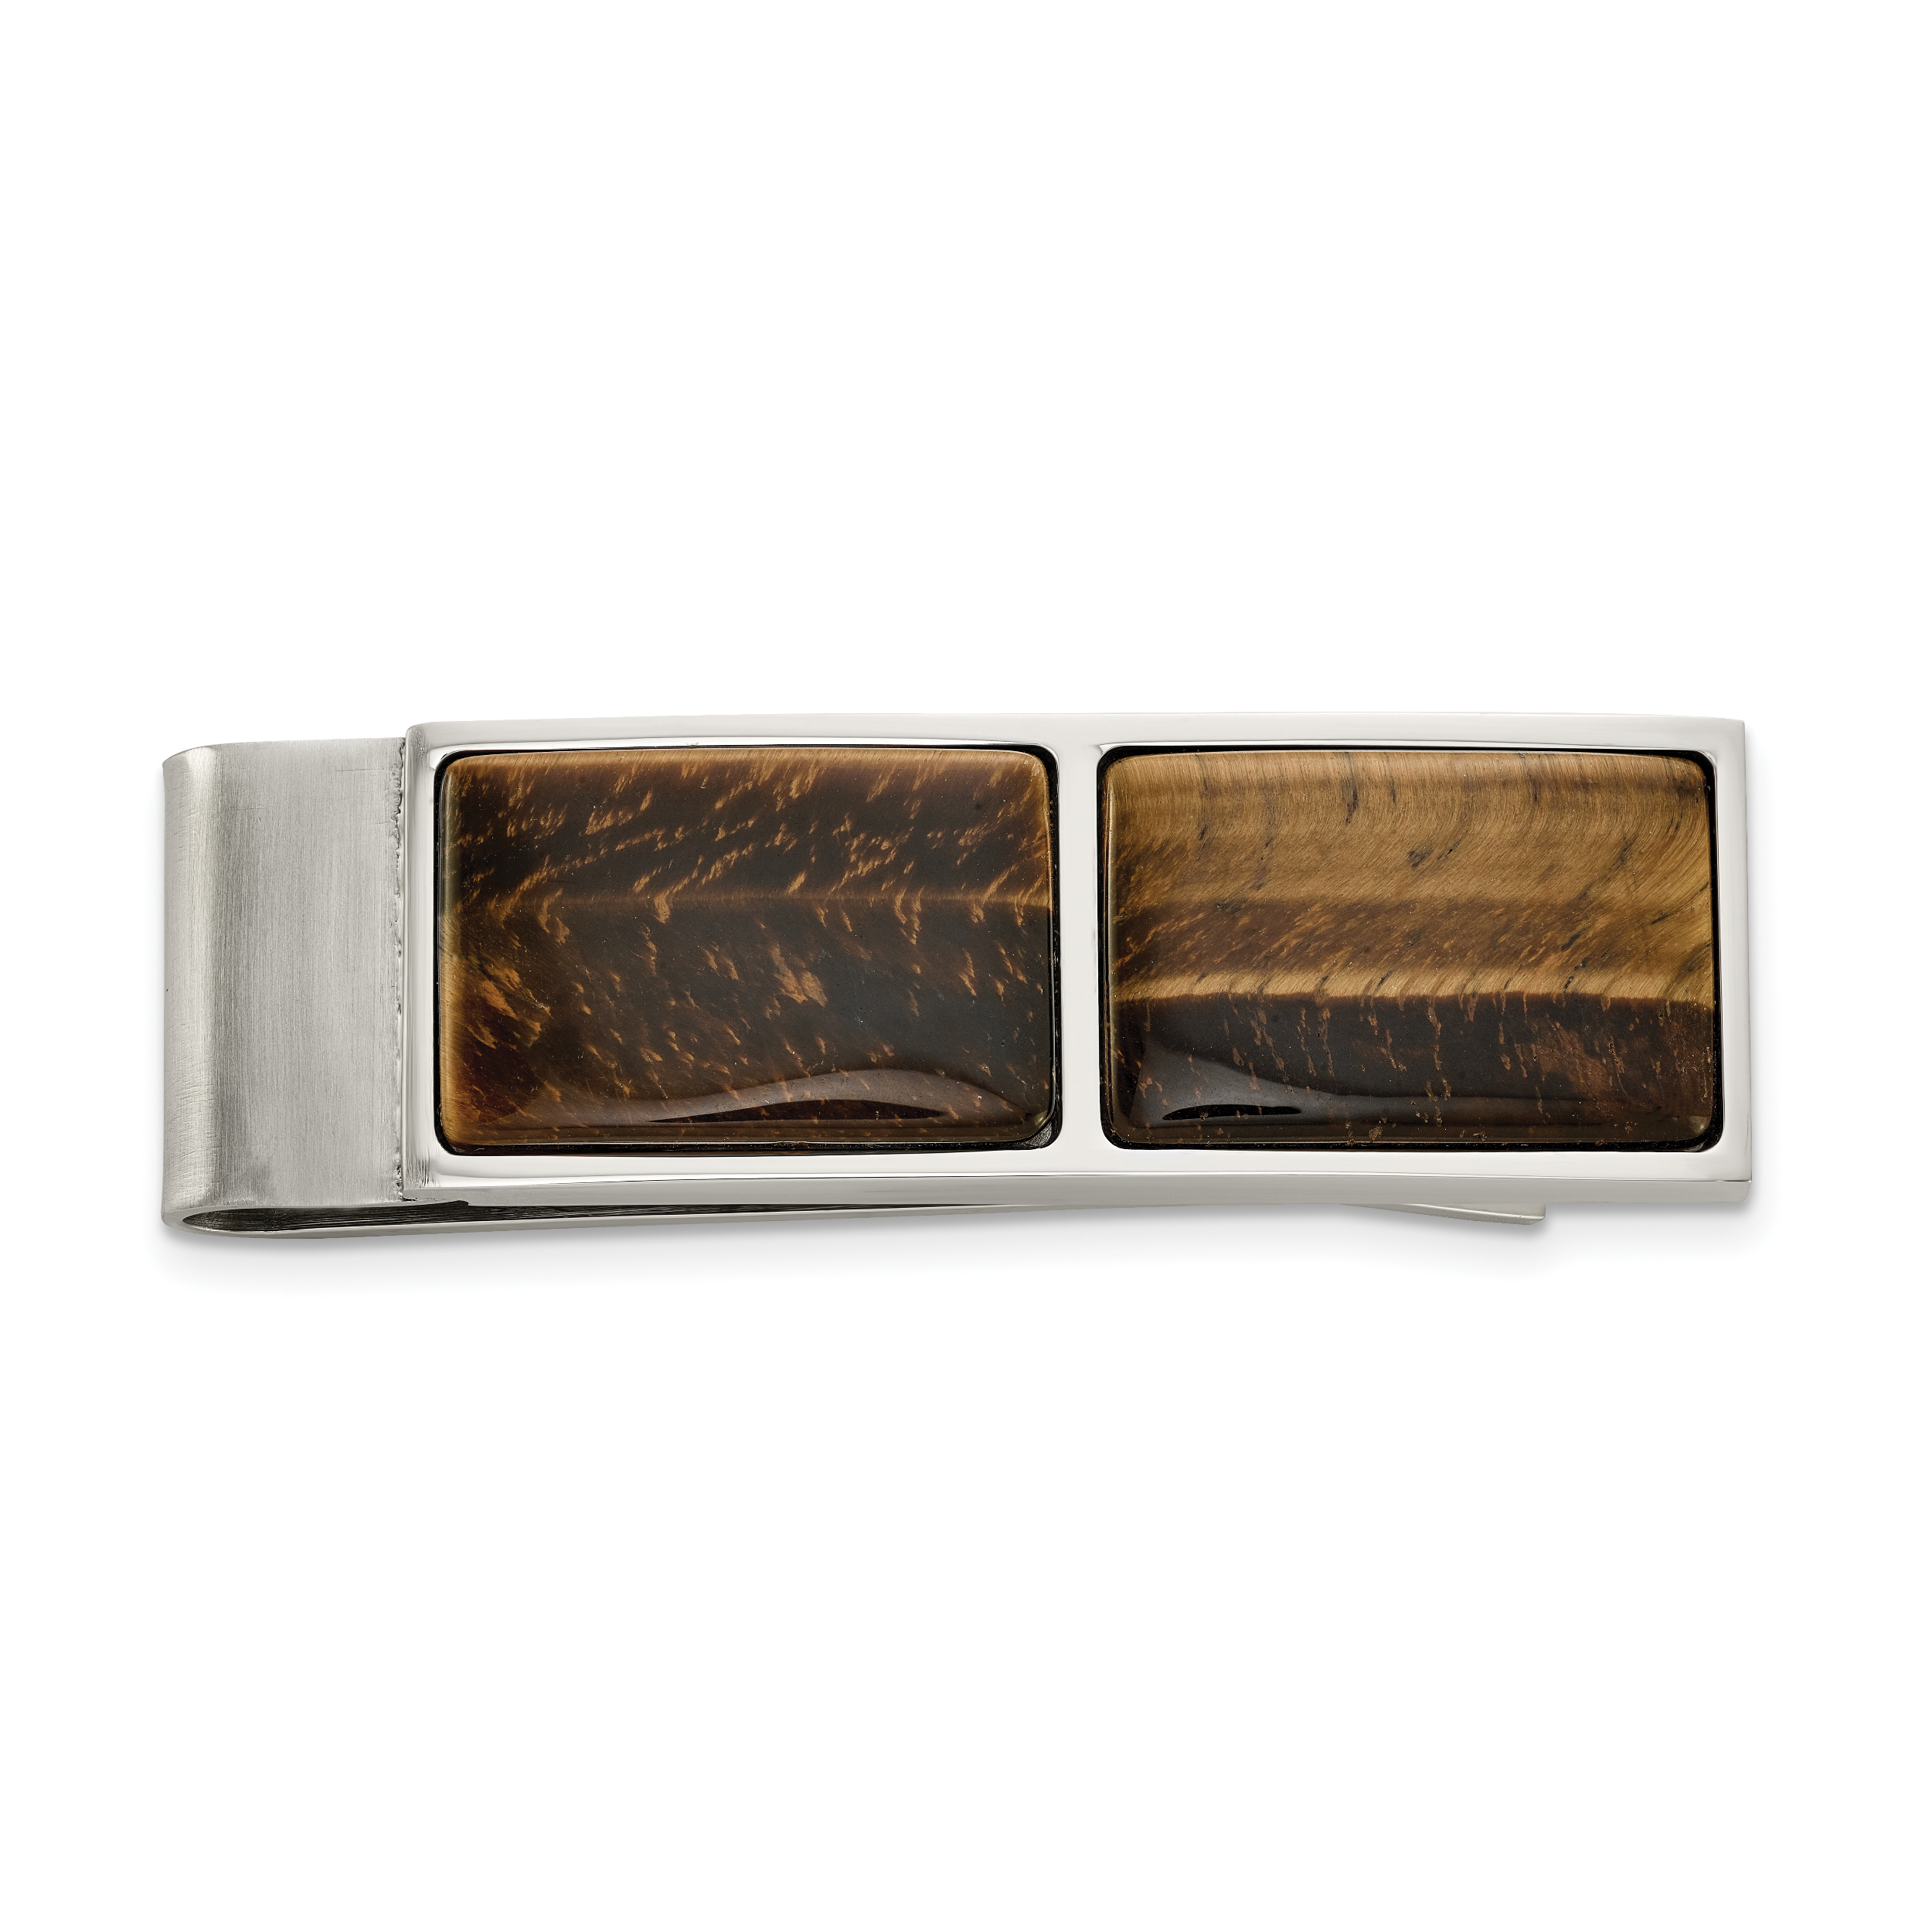 Stainless Steel Mens Accessory Money Clips 21 mm 50 mm Polished Grooved Money Clip